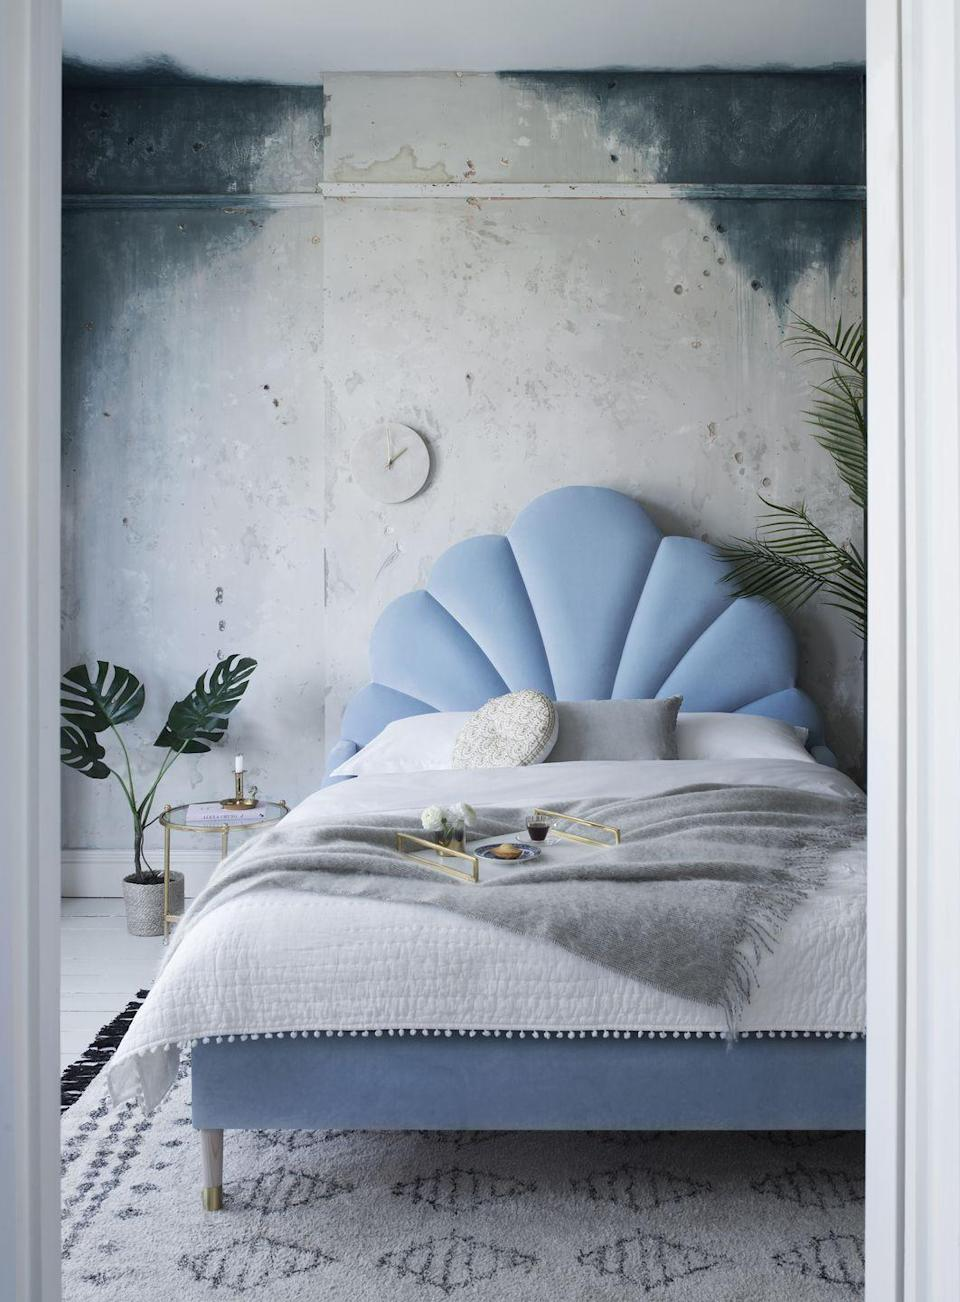 """<p>Blue is a calming colour, and so finds a natural fit in a bedroom. This delicate shade is particularly conducive to a restful environment, promoting tranquillity and stability - the perfect antidote to a restless mind and body.<br></p><p>Pictured: <a href=""""https://www.sweetpeaandwillow.com/beds-bedroom/handmade-beds/ariel-bed"""" rel=""""nofollow noopener"""" target=""""_blank"""" data-ylk=""""slk:Ariel Upholstered Bed at Sweetpea & Willow"""" class=""""link rapid-noclick-resp"""">Ariel Upholstered Bed at Sweetpea & Willow</a></p>"""